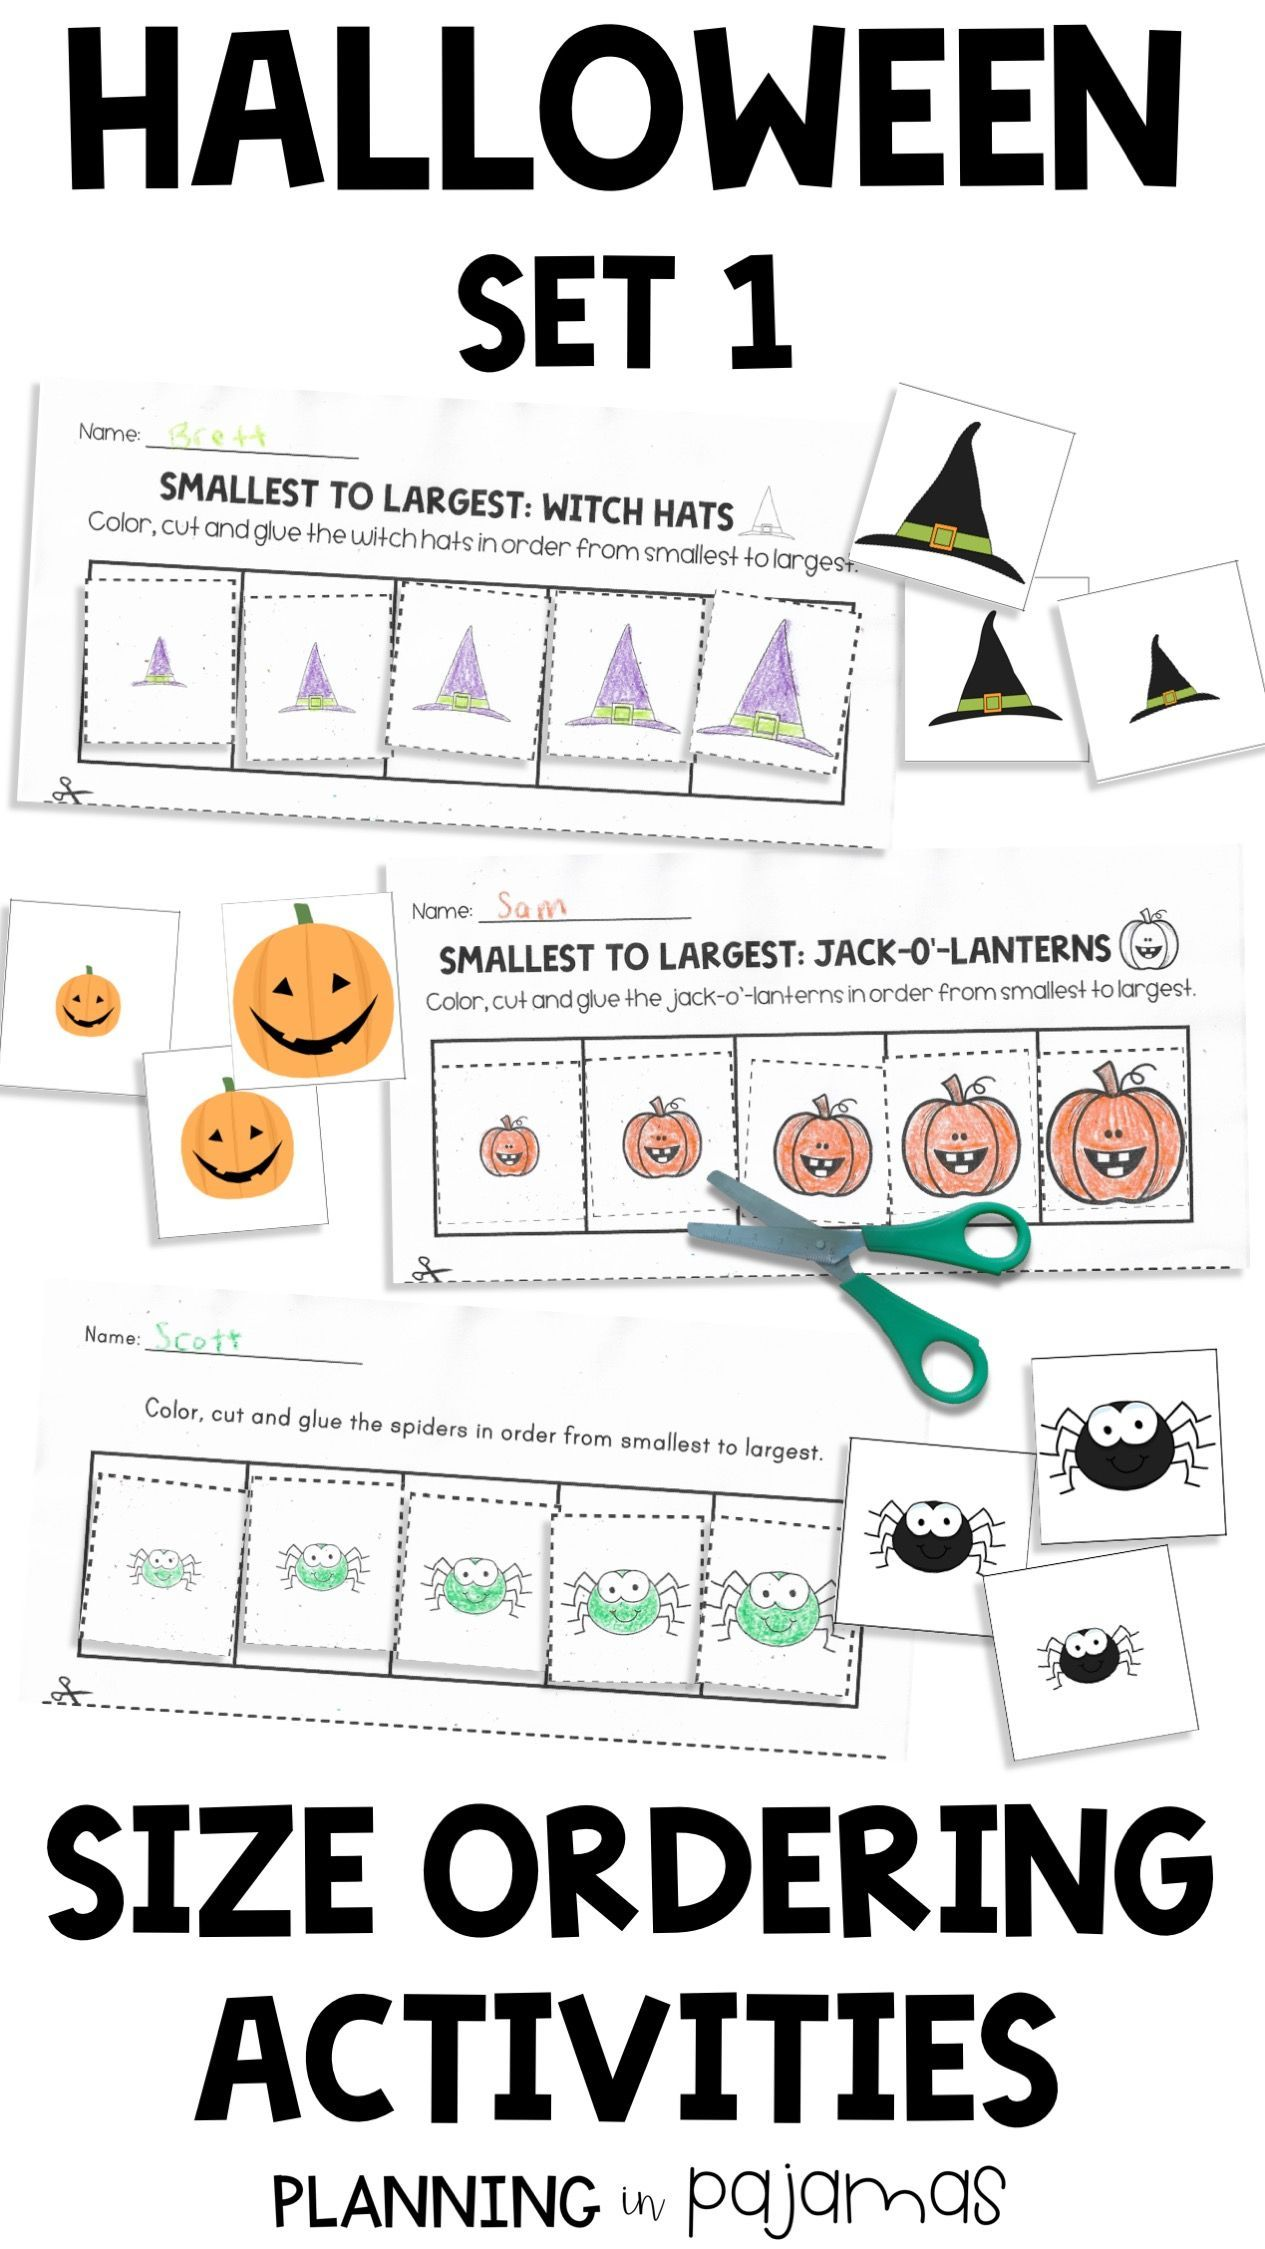 Halloween Size Ordering Set 1